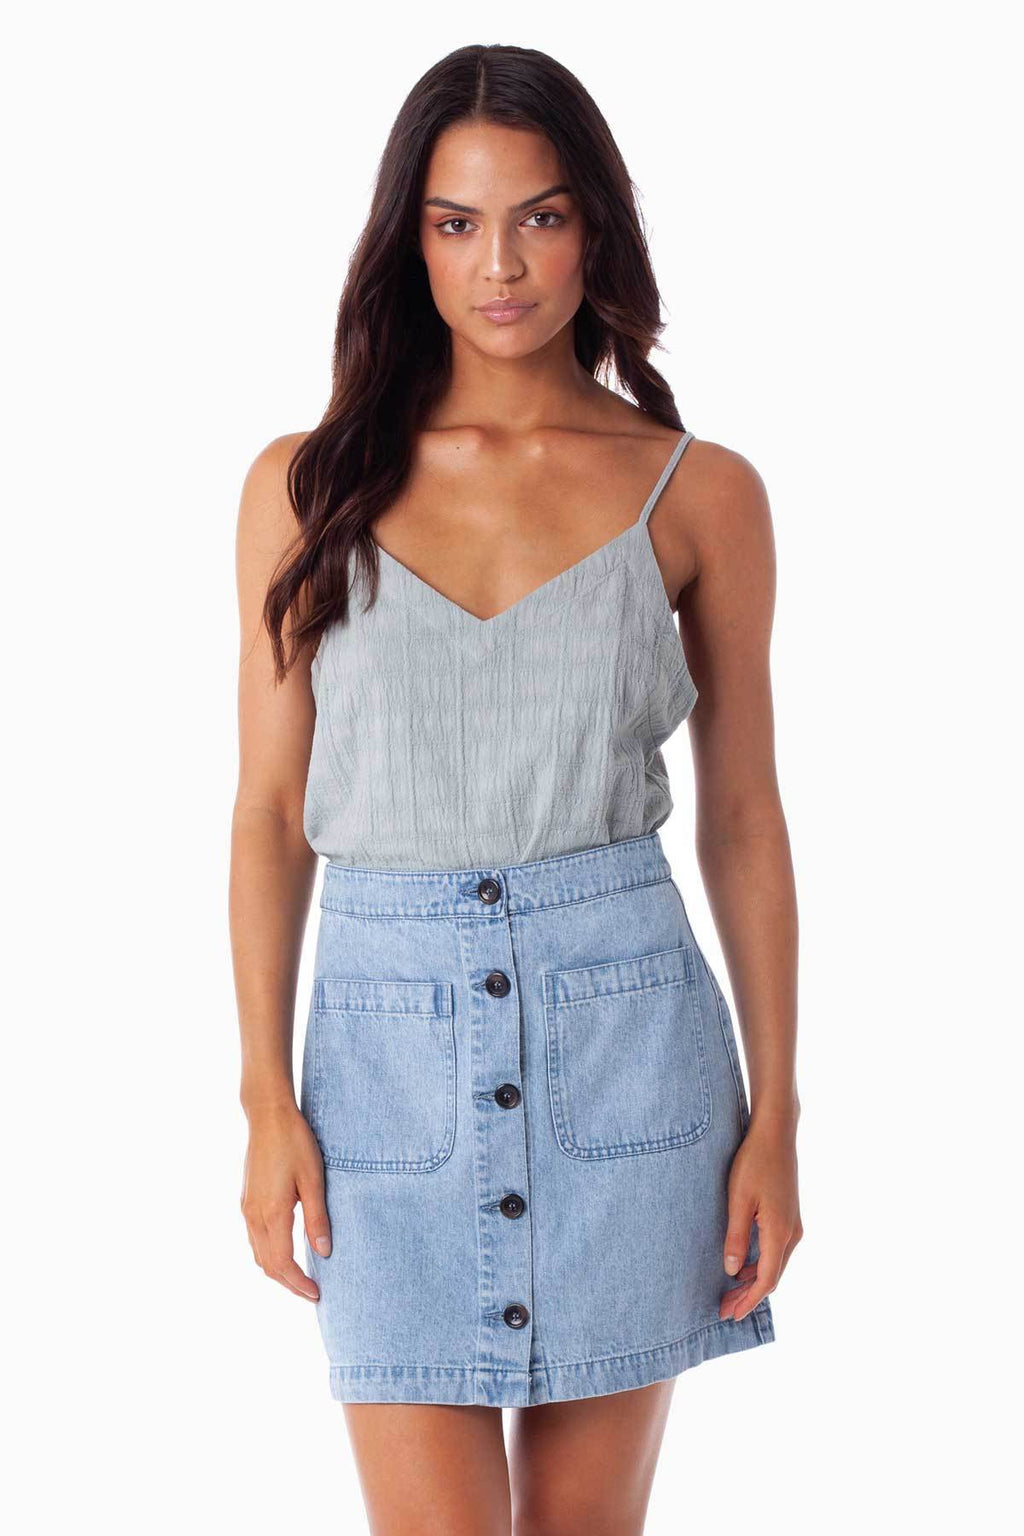 Rhythm Mayfair Skirt Denim